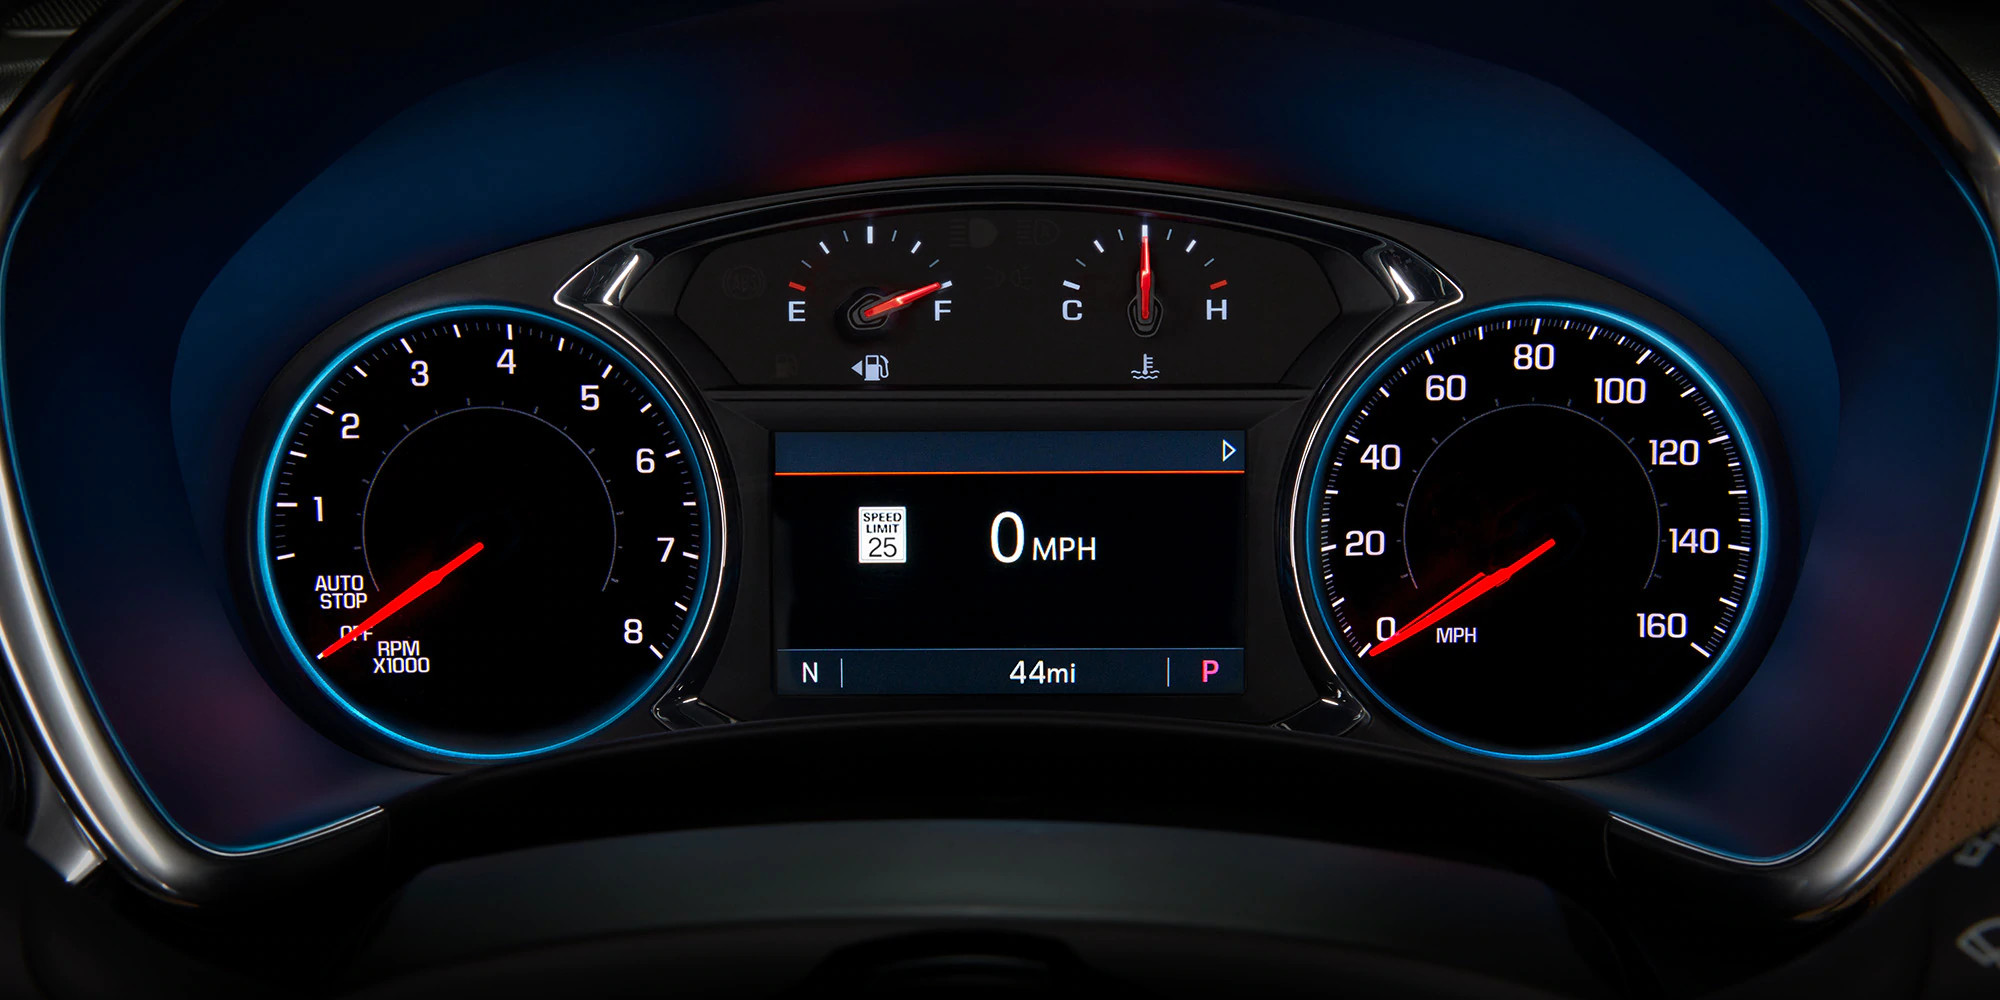 Instrument Panel in the 2020 Chevrolet Equinox